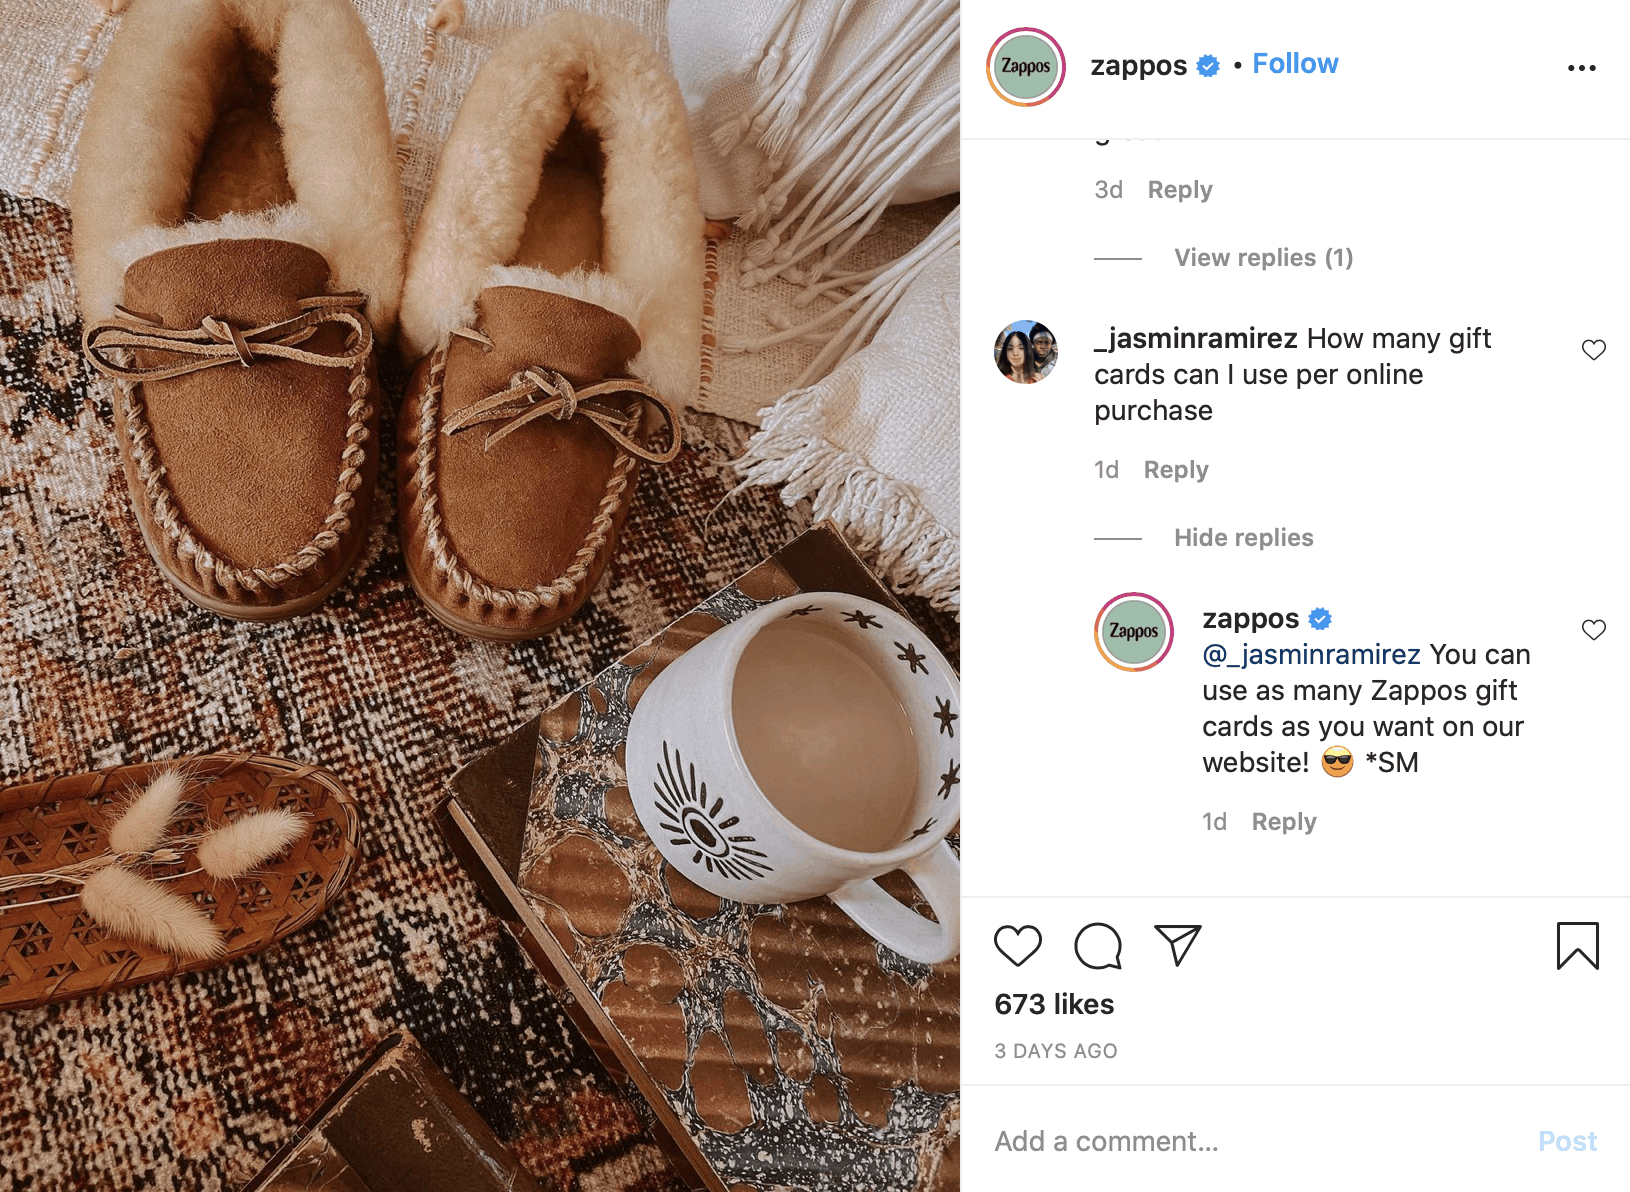 Another example of a brand providing customer service on Instagram.